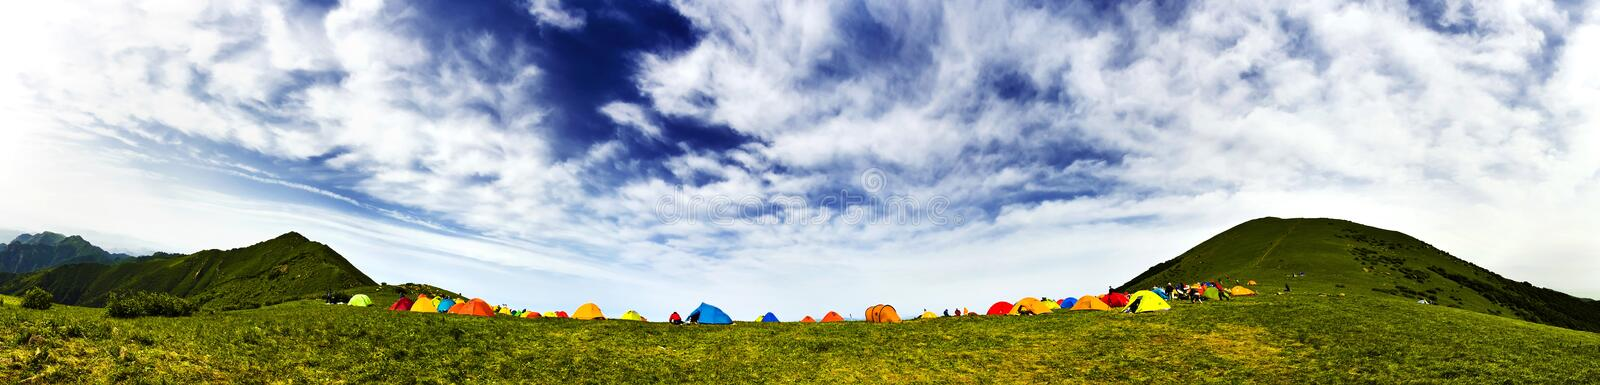 Download Camping tents stock image. Image of enjoyment, leisure - 9898851